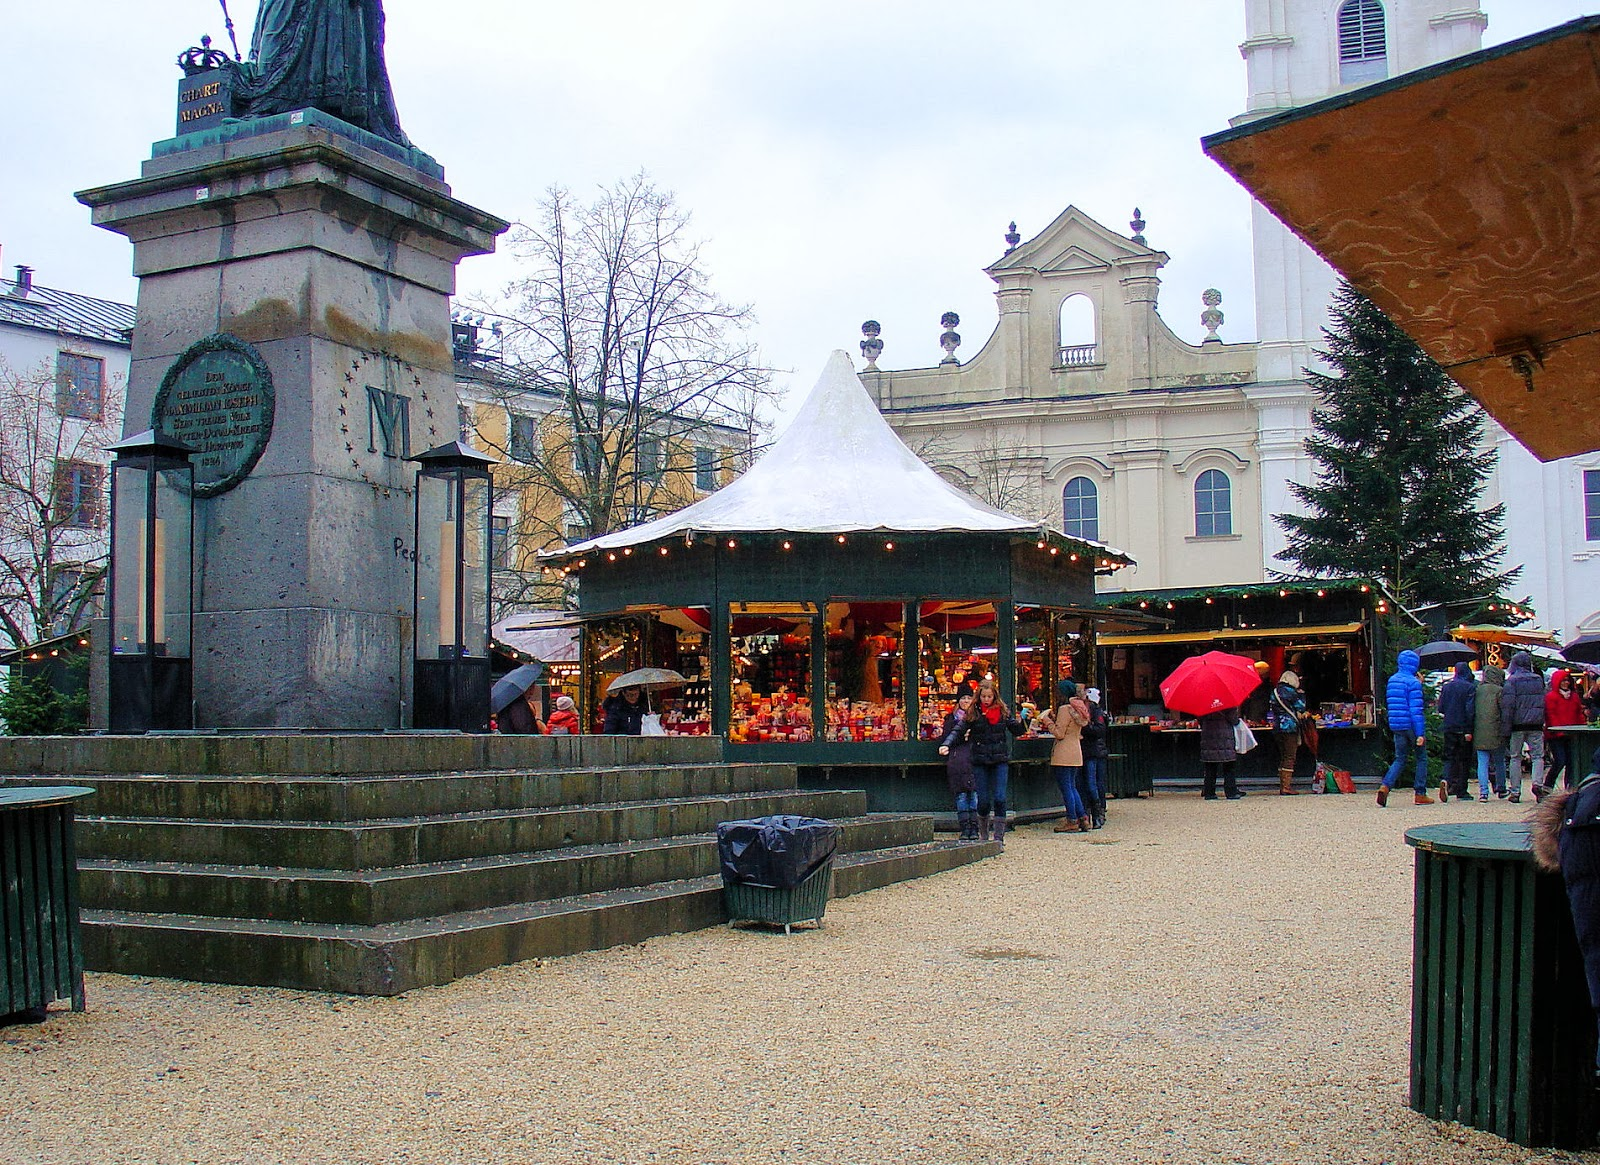 Welcome to the Christkindlmarkt or Passau Christmas market at St. Stephan's.